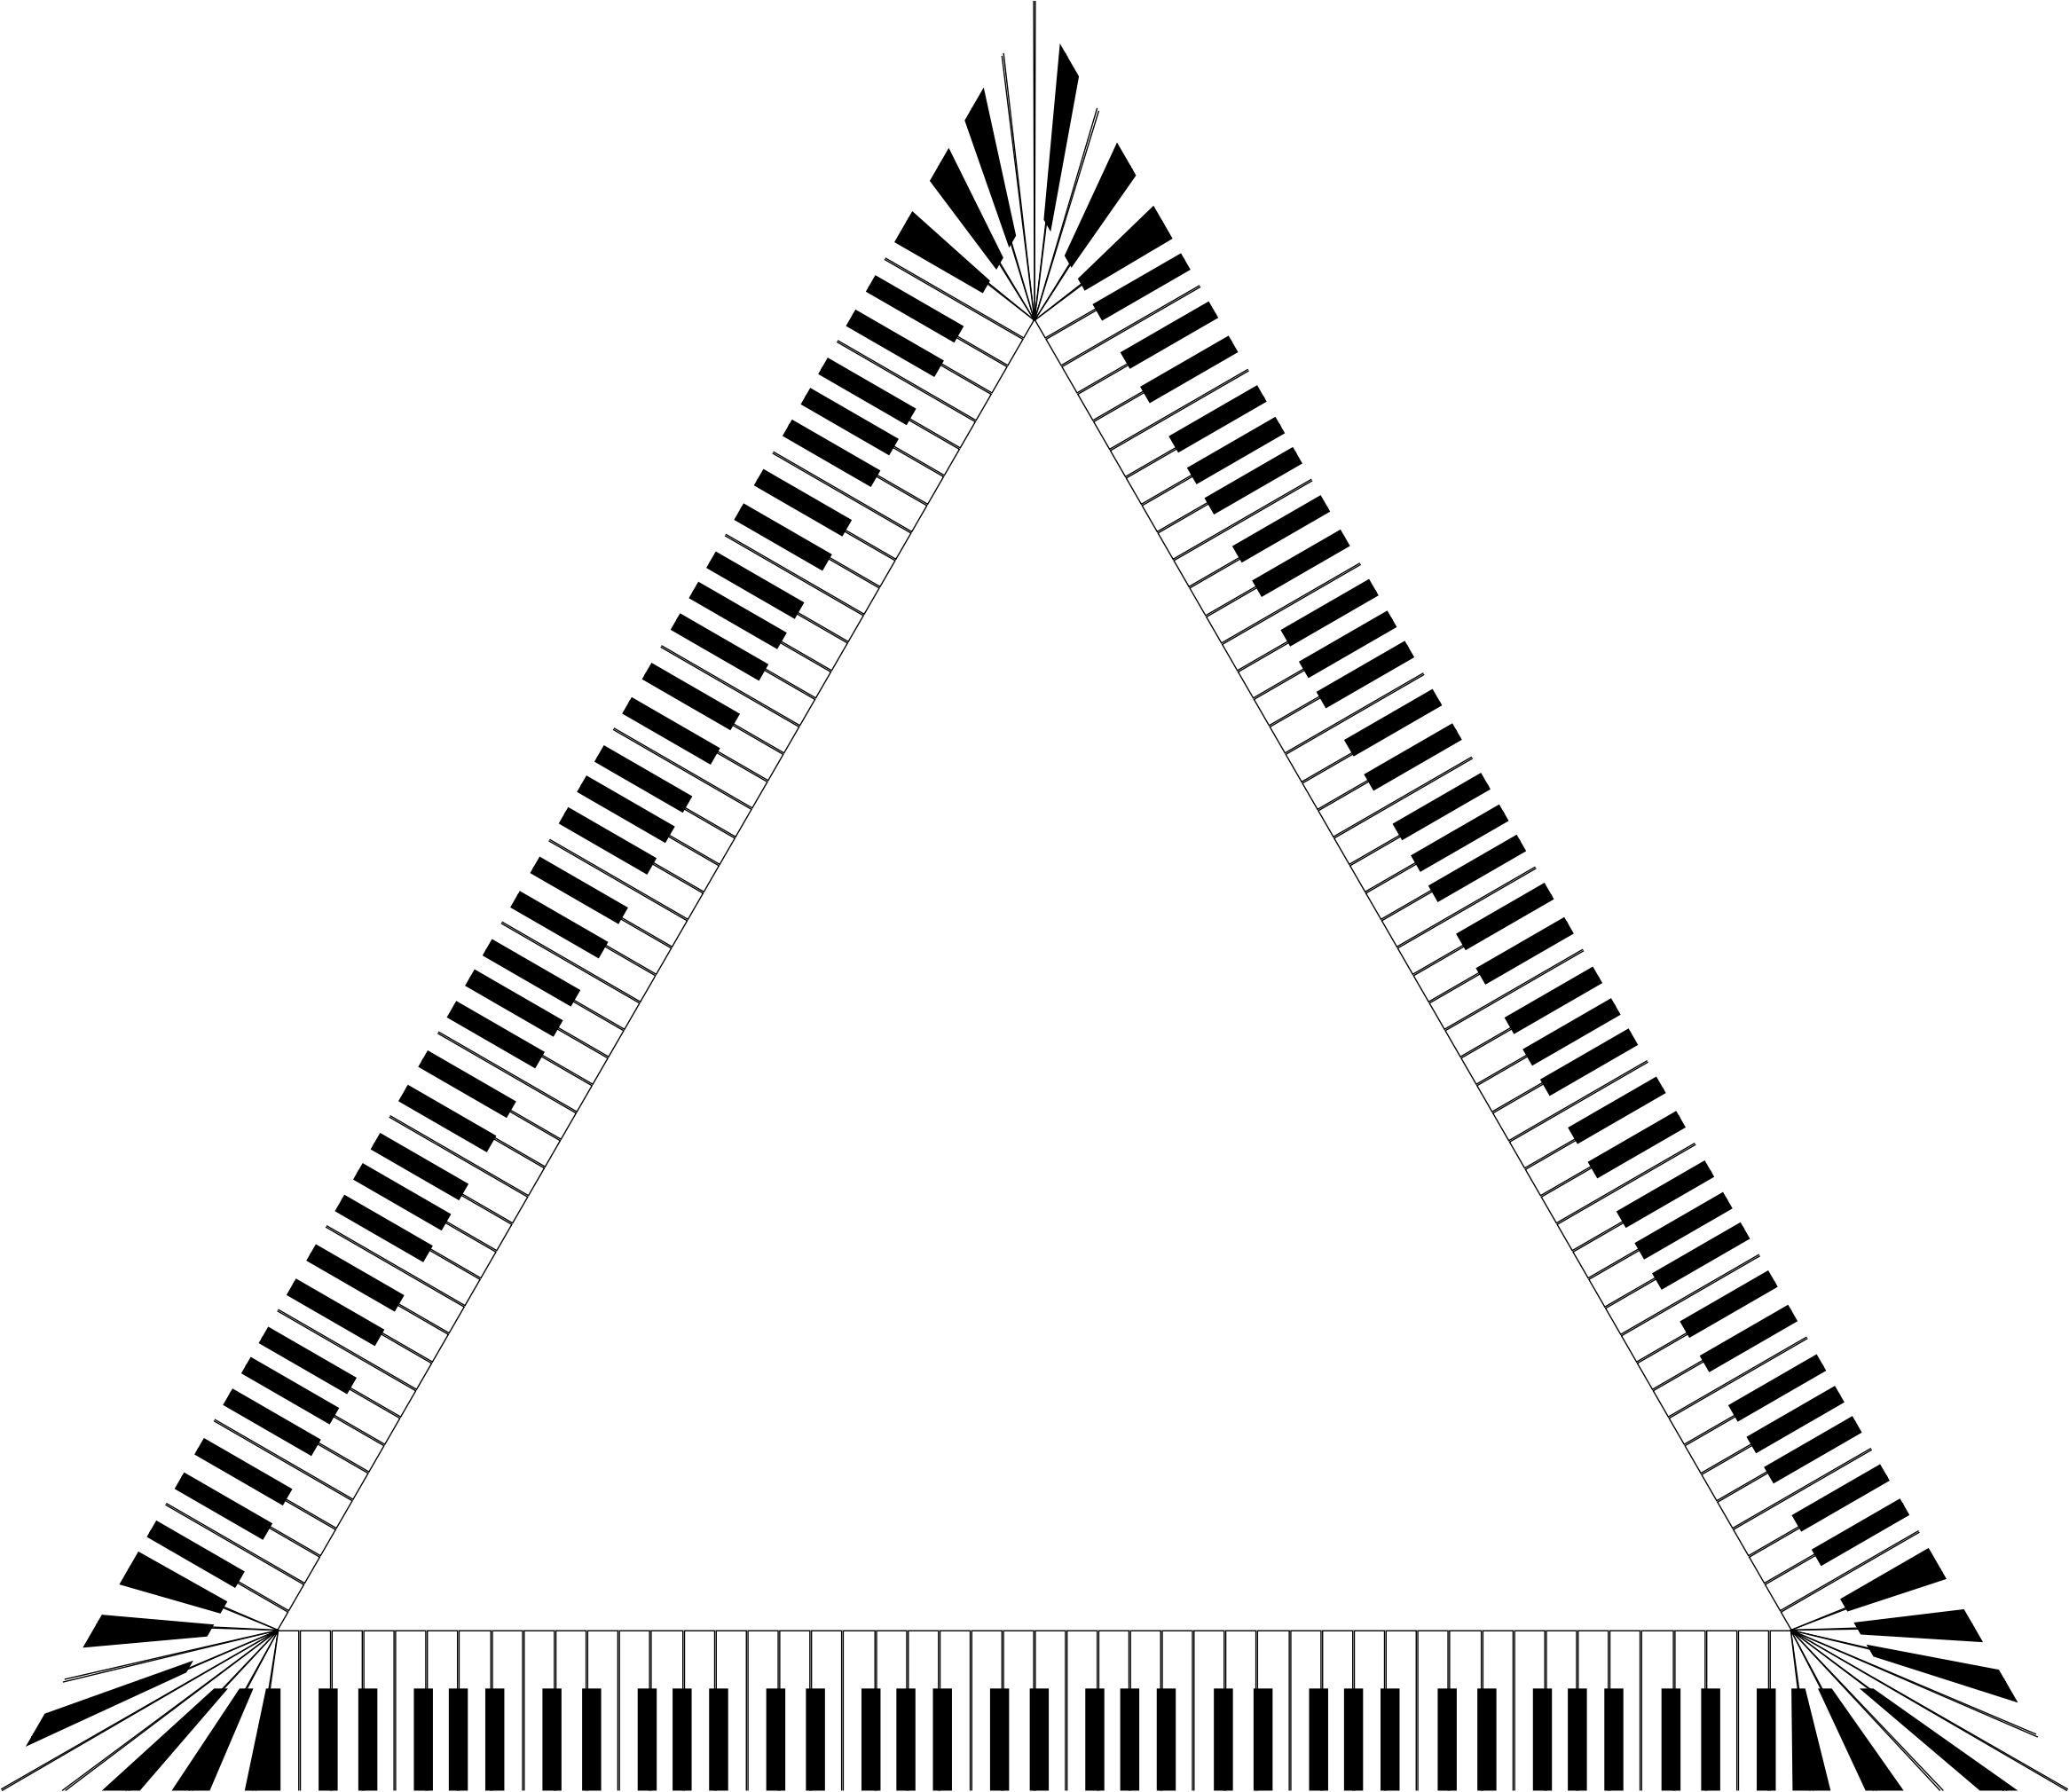 Keys big image png. Piano clipart triangle